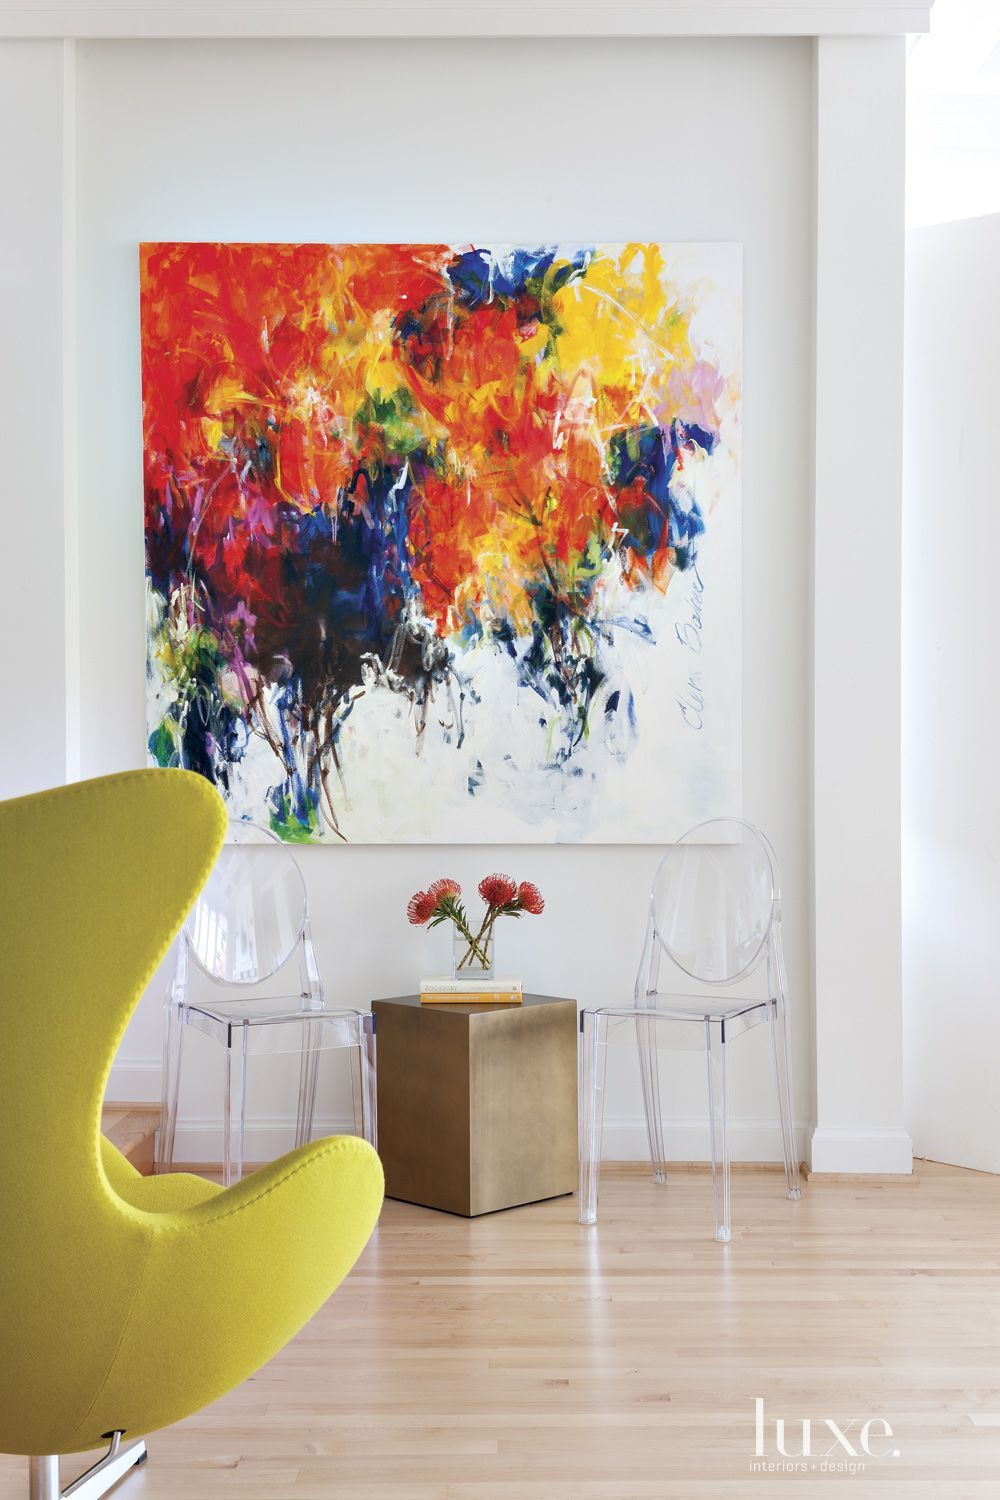 Living Room Painting Design: In The Living Room, White Walls Showcase A Vibrant Oil